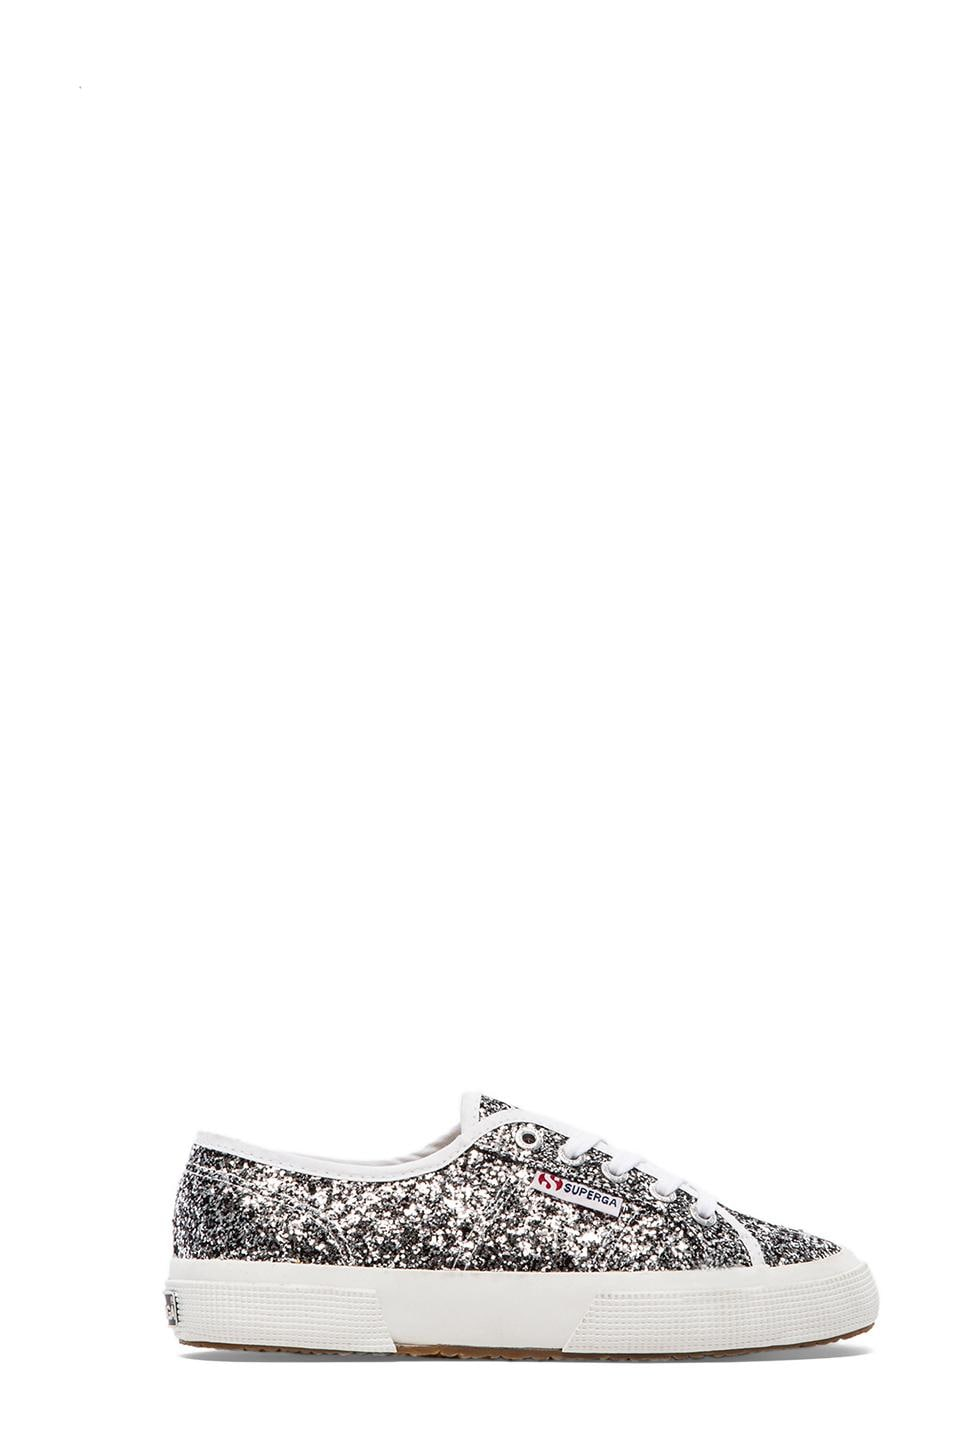 Superga Chunky Glitter Sneakers in Silver